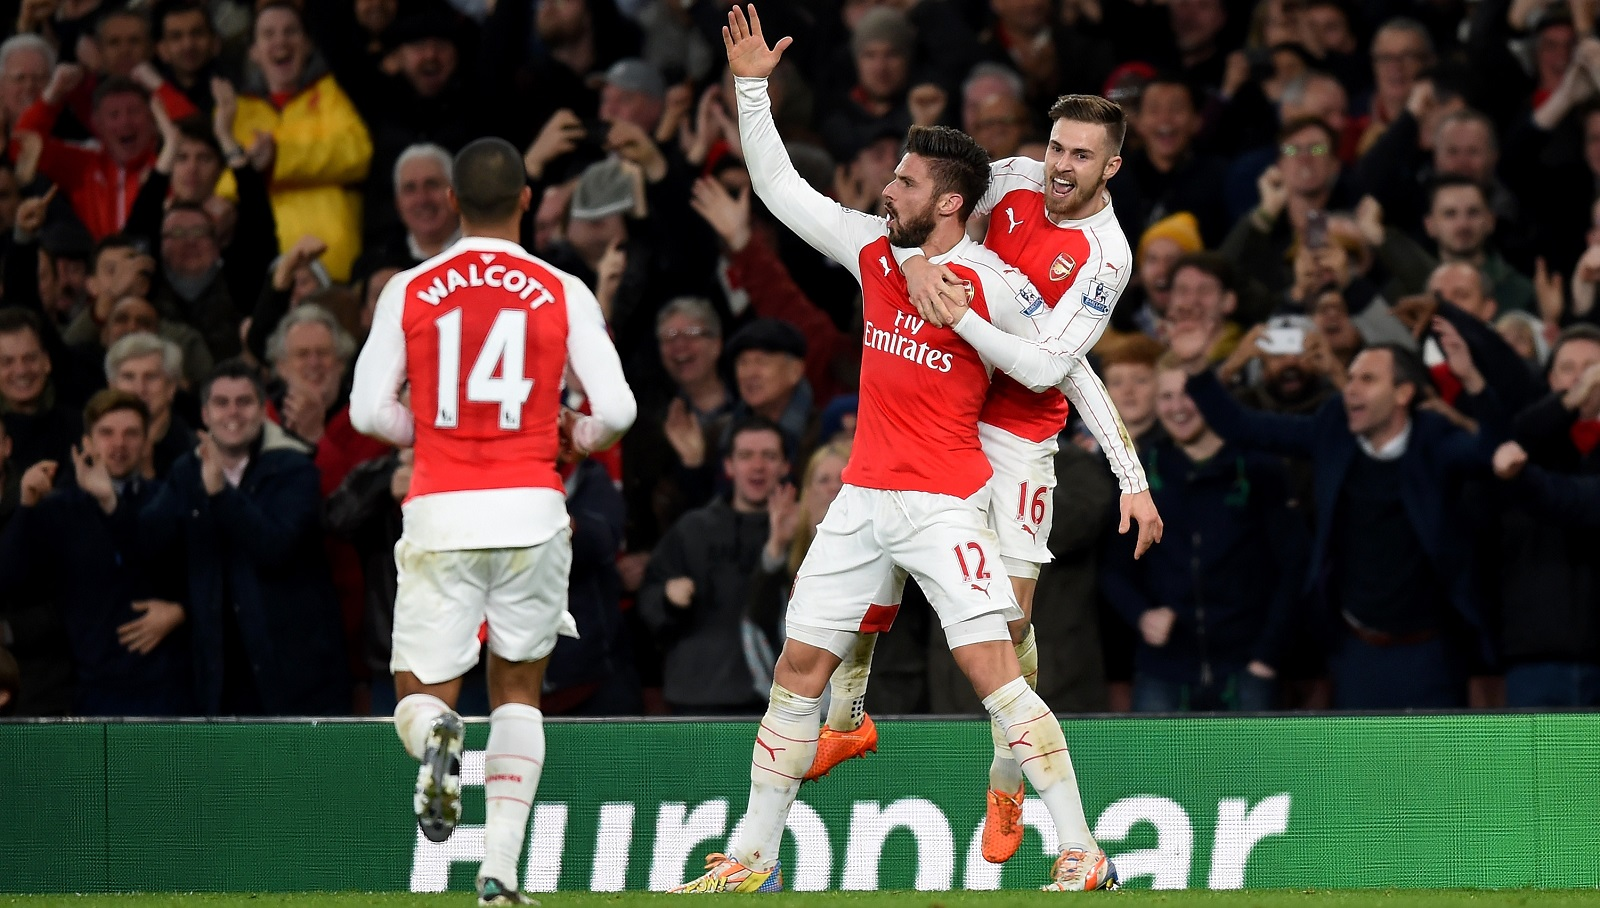 Olivier Giroud, middle, celebrates his goal for Arsenal with teammates Theo Walcott, left, and Aaron Ramsey. (Getty Images)